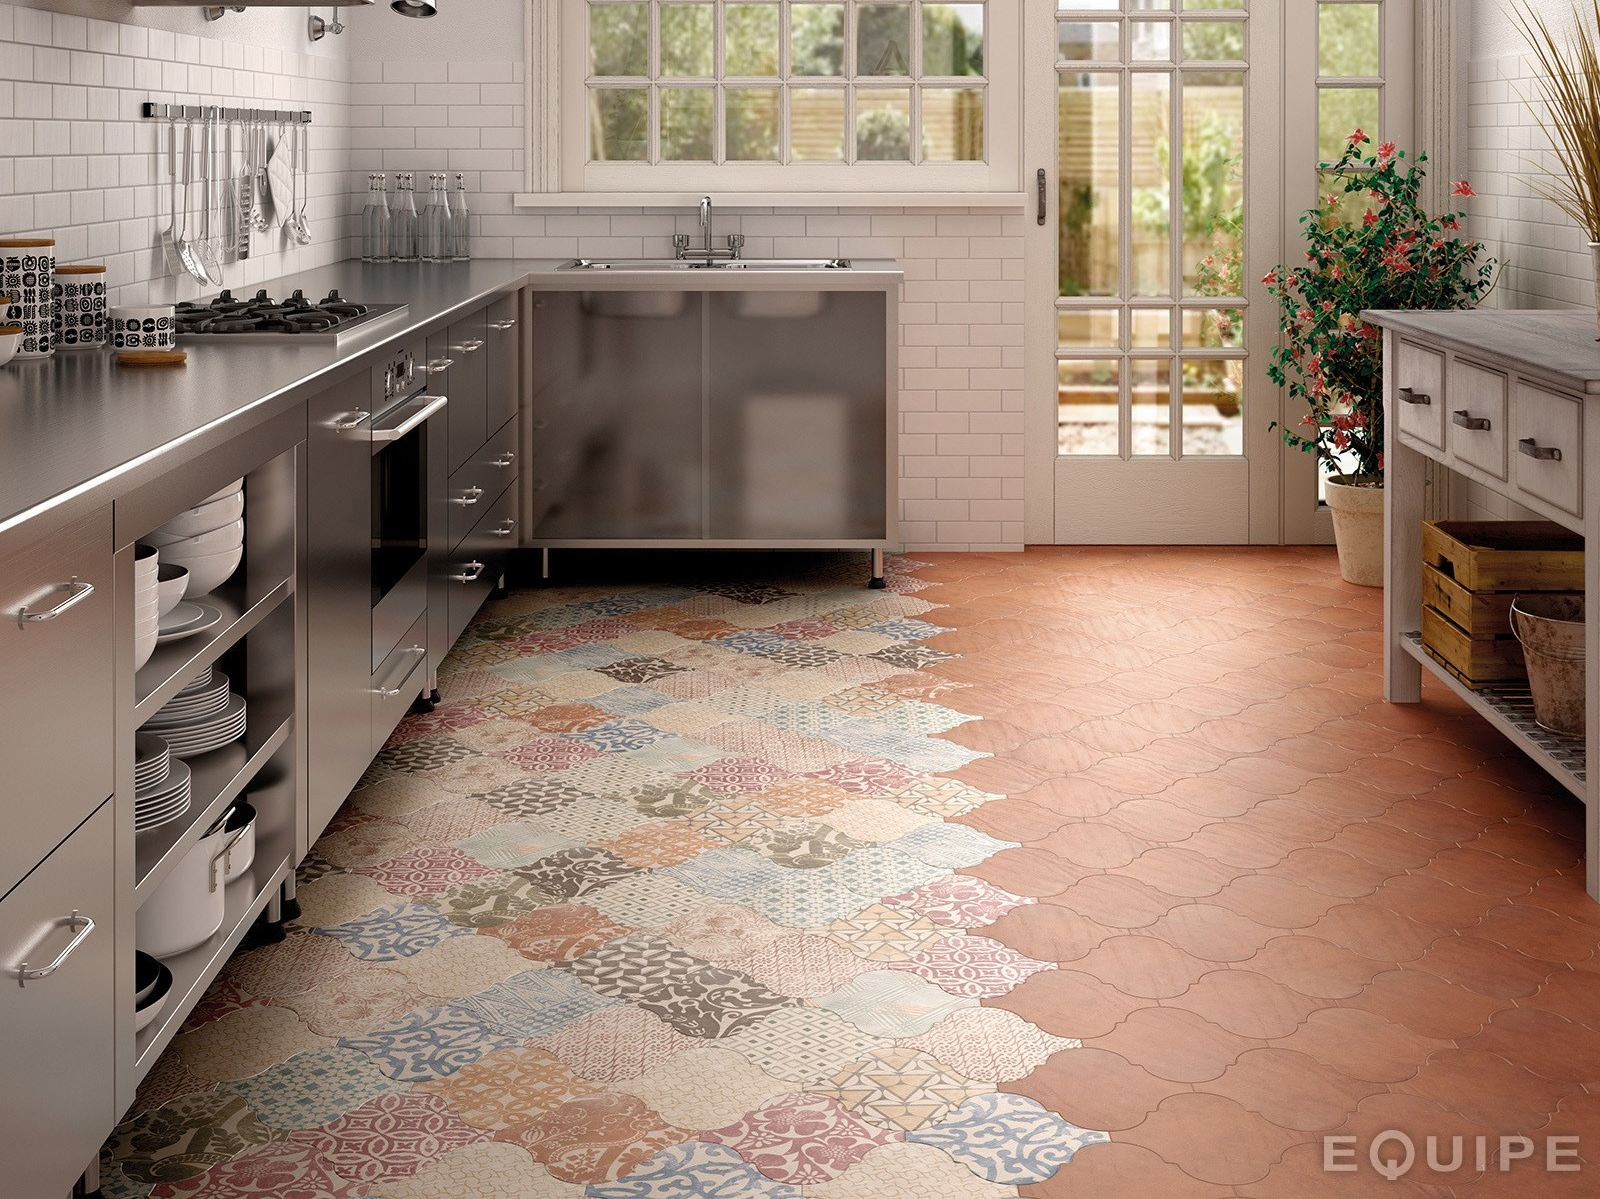 Floor Tile Ideas 21 arabesque tile ideas for floor wall and backsplash KLBODYP